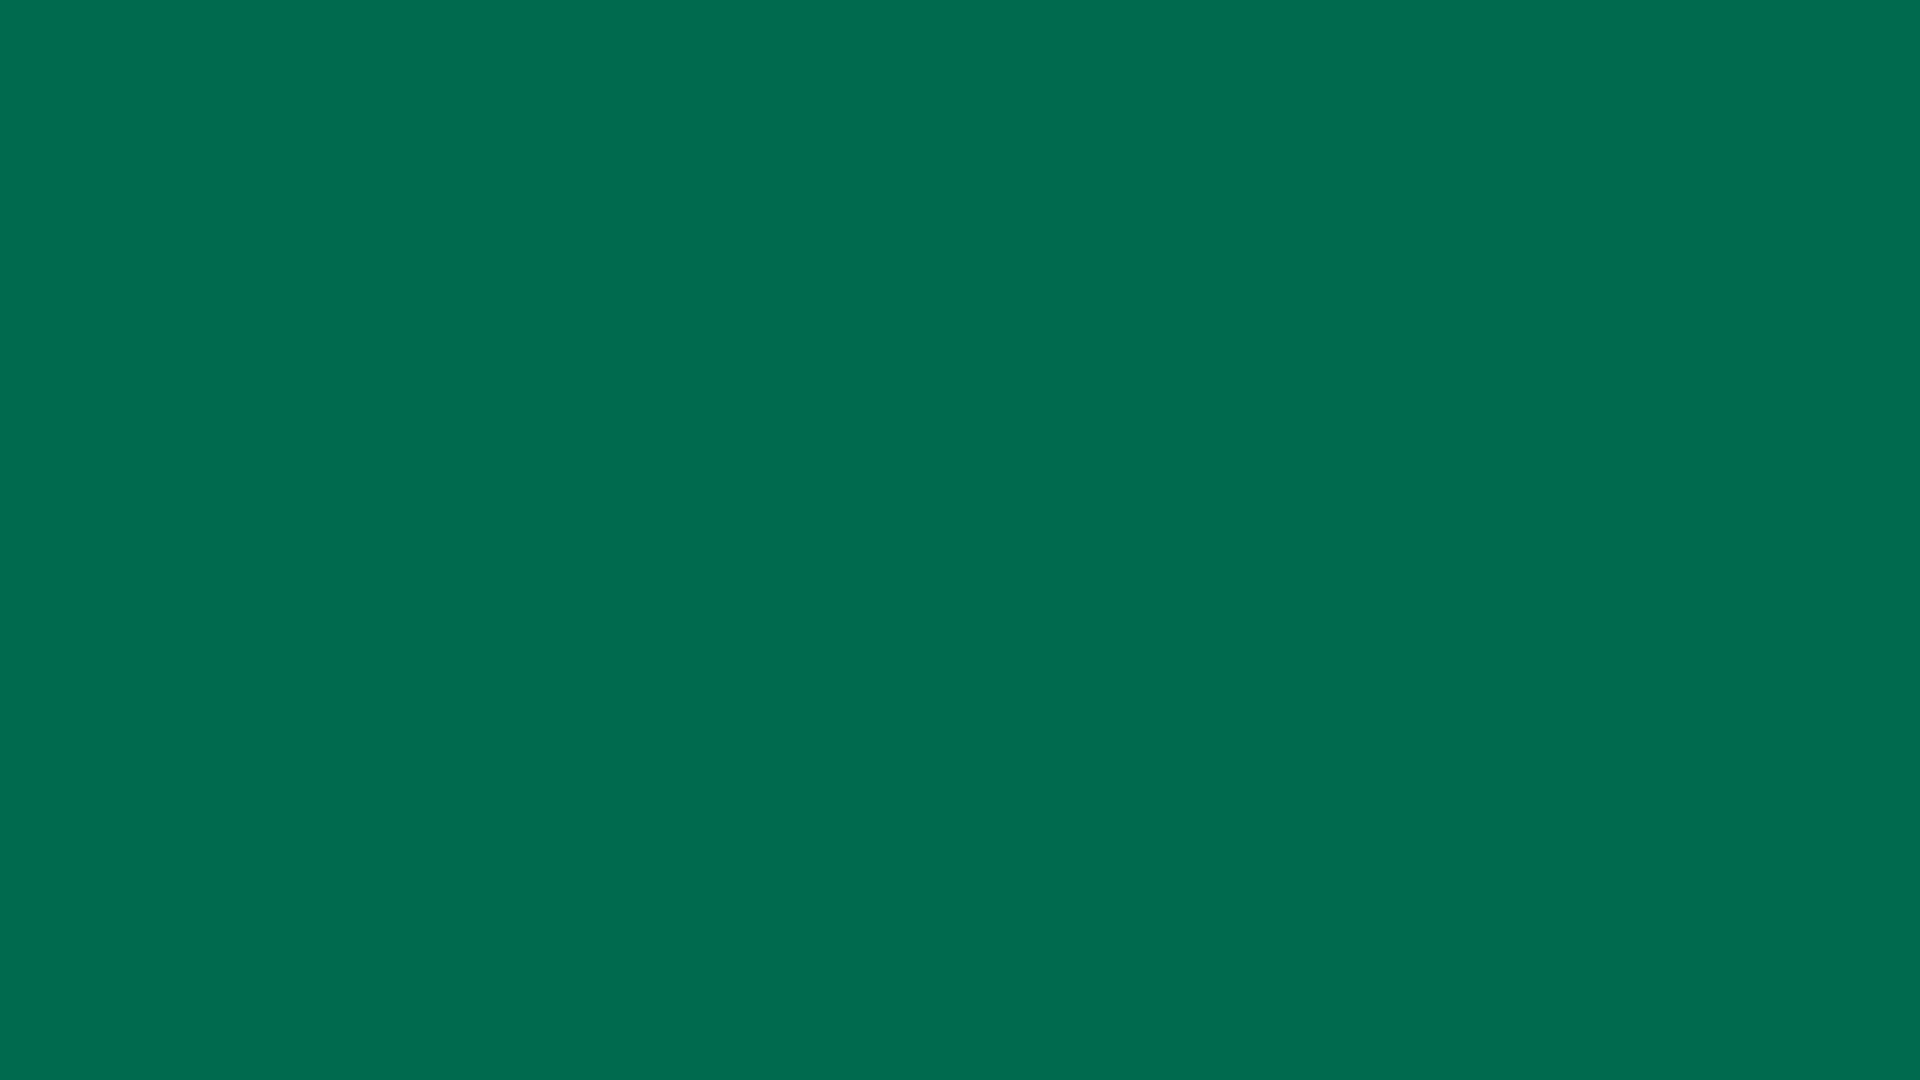 1920x1080 - Solid Green 20